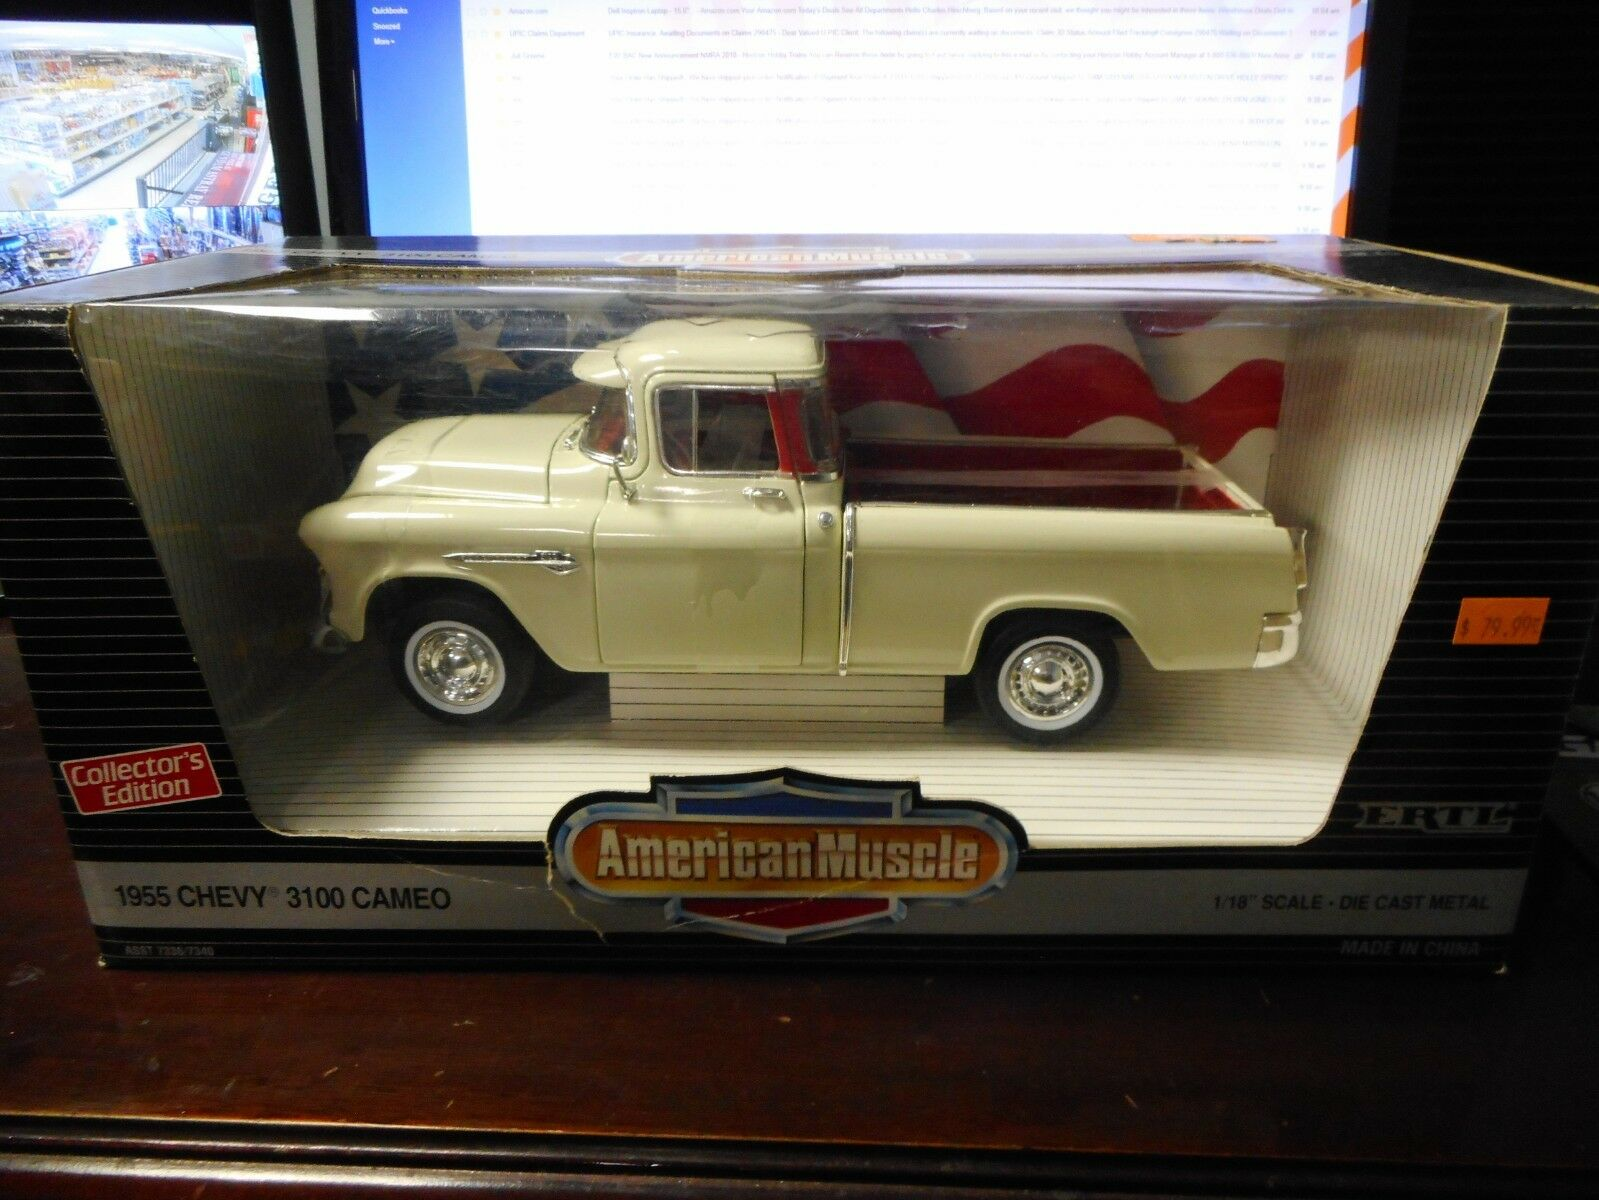 American Muscle - 1955 Chevy 3100 Cameo (1 18)